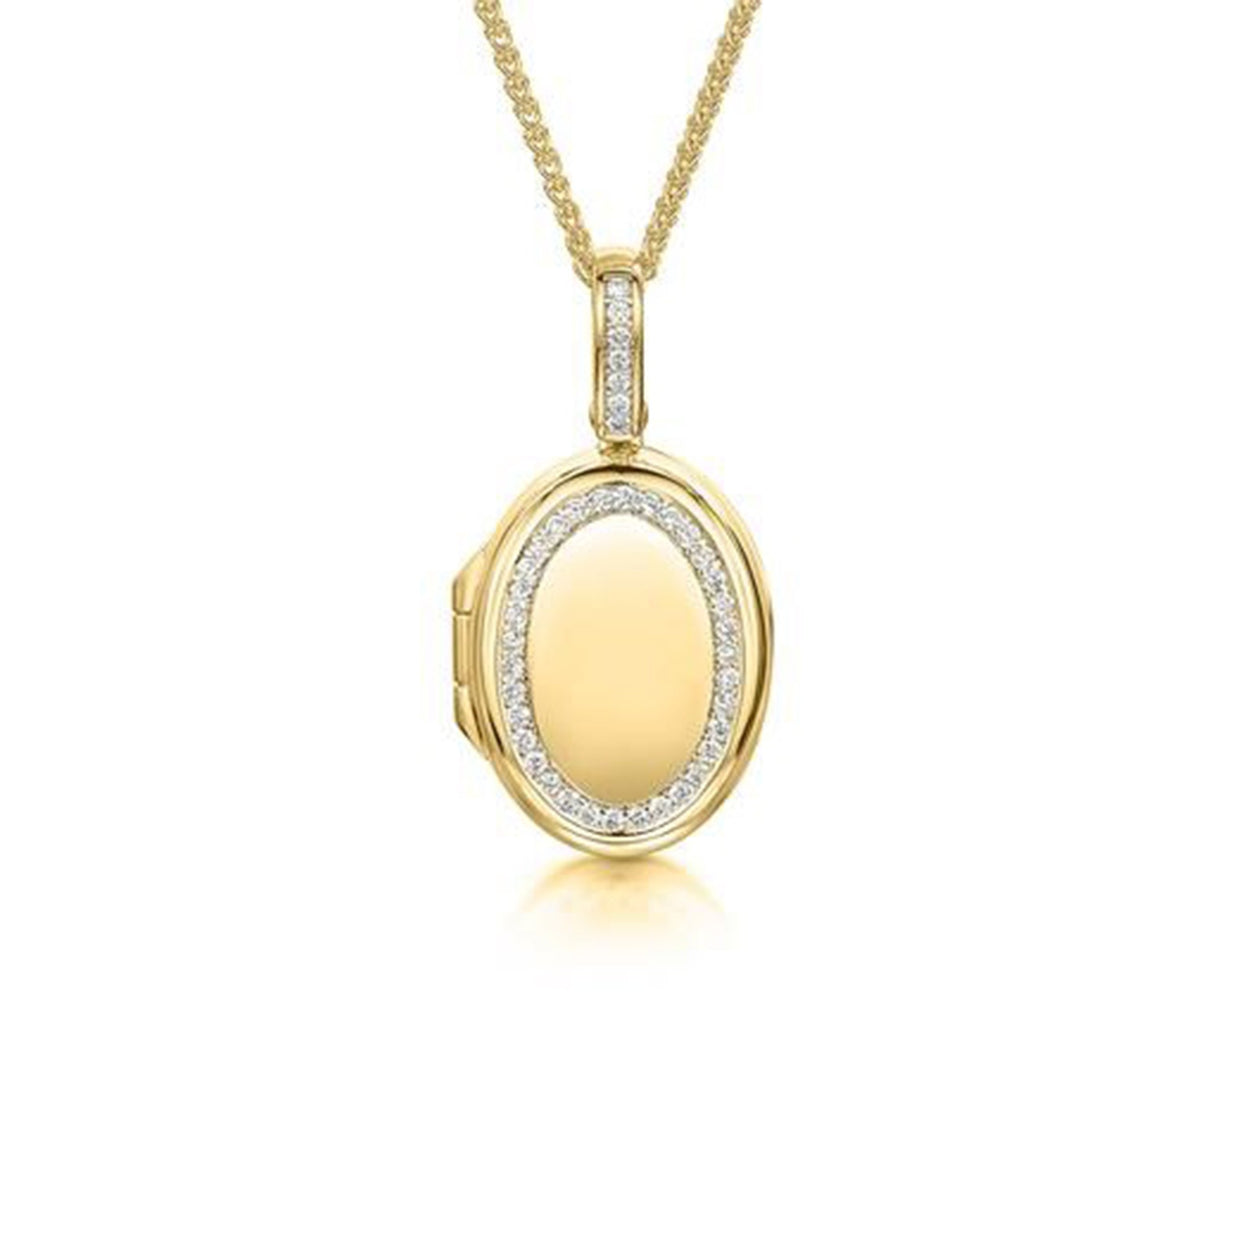 18ct Yellow Gold Oval Locket-Hamilton & Inches